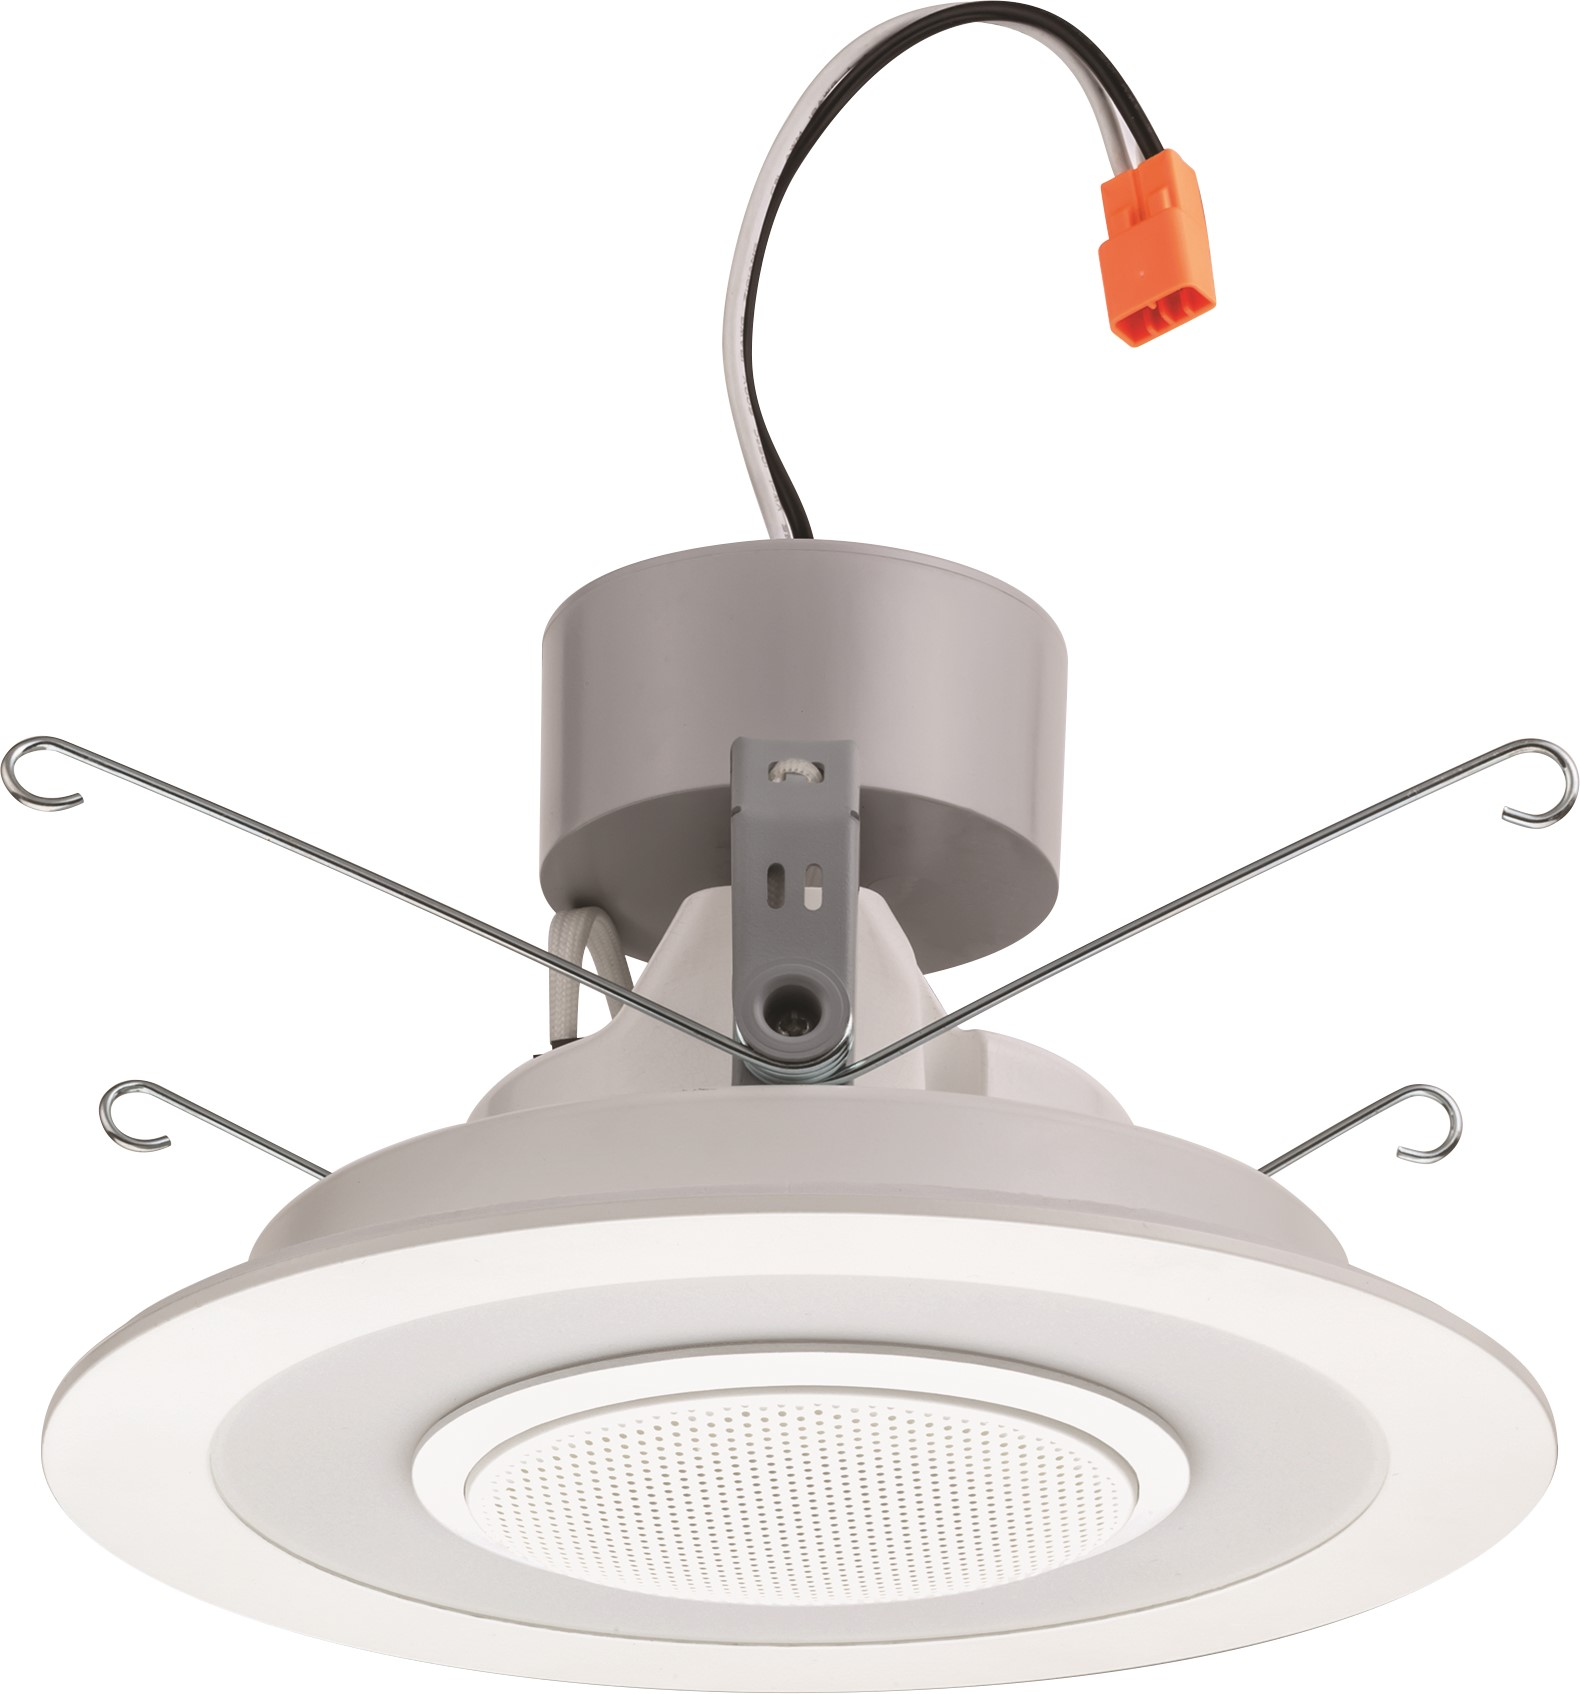 Awe Inspiring 6Sl Speaker Downlight 6Sl Led 6 Downlight With Integrated Speaker Wiring Cloud Pendufoxcilixyz